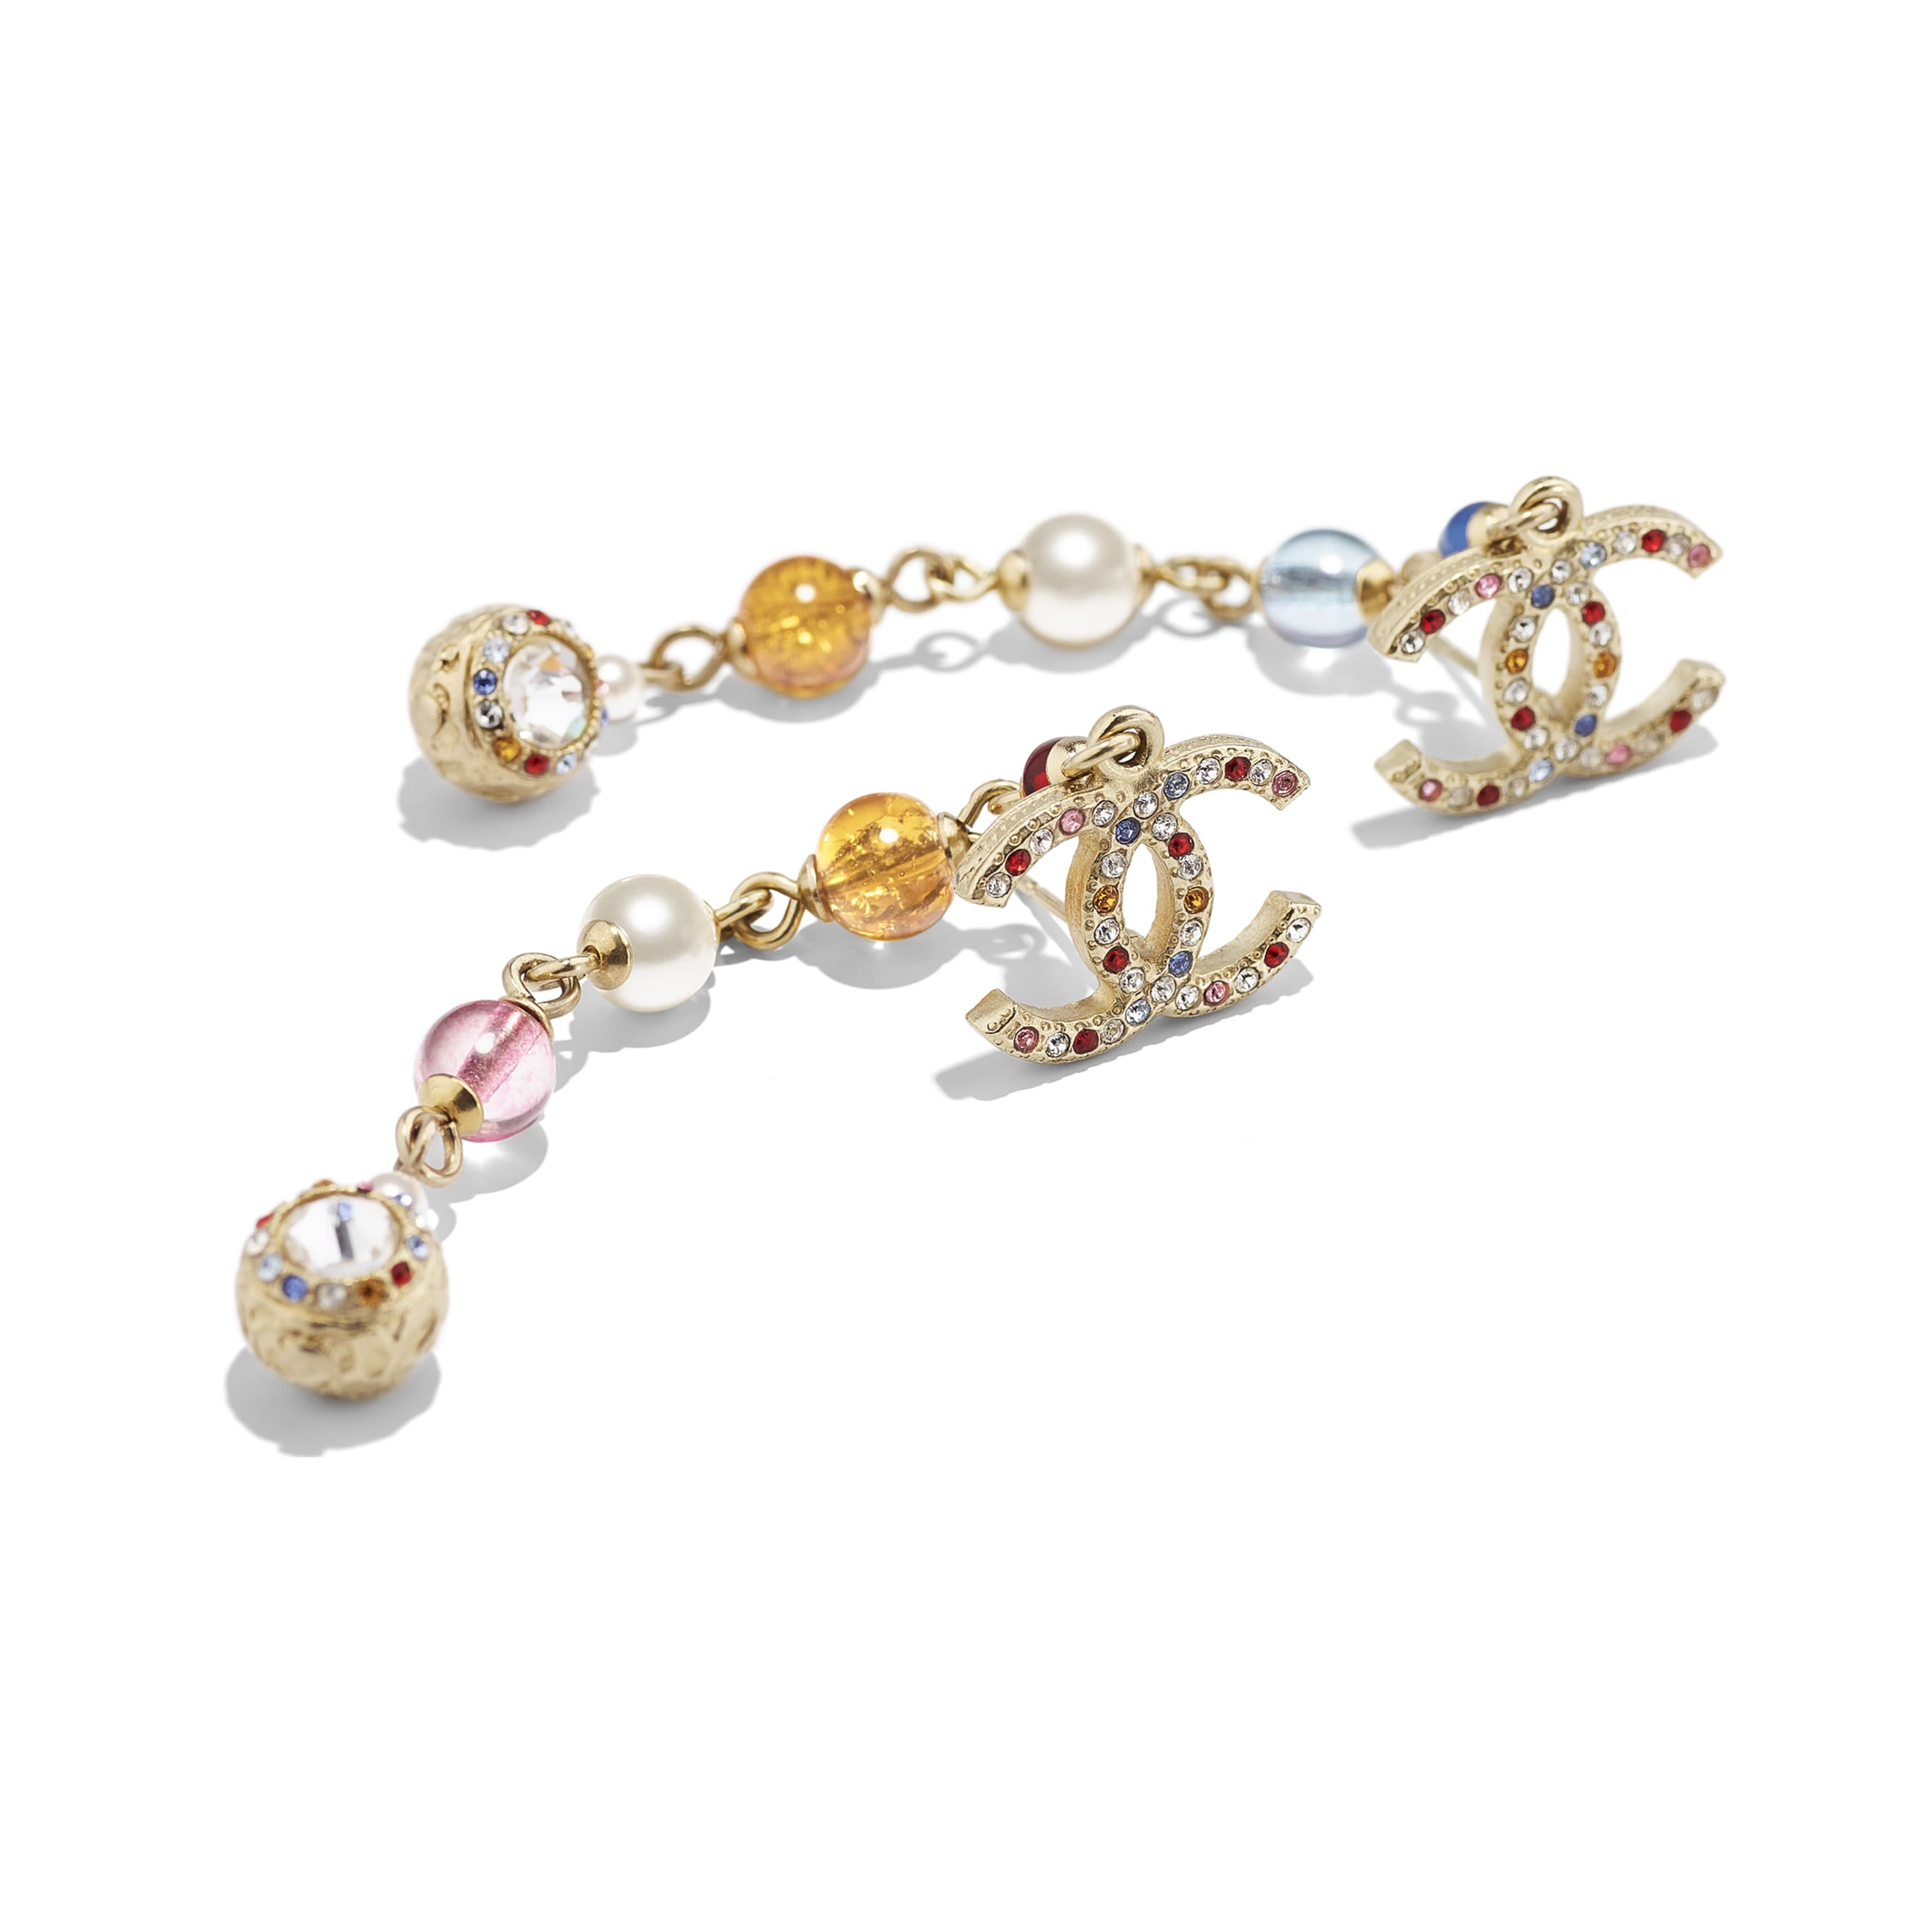 Earrings - Gold, Multicolor, Pearly White & Crystal - Metal, Natural Stones, Glass Pearls & Strass - CHANEL - Alternative view - see standard sized version